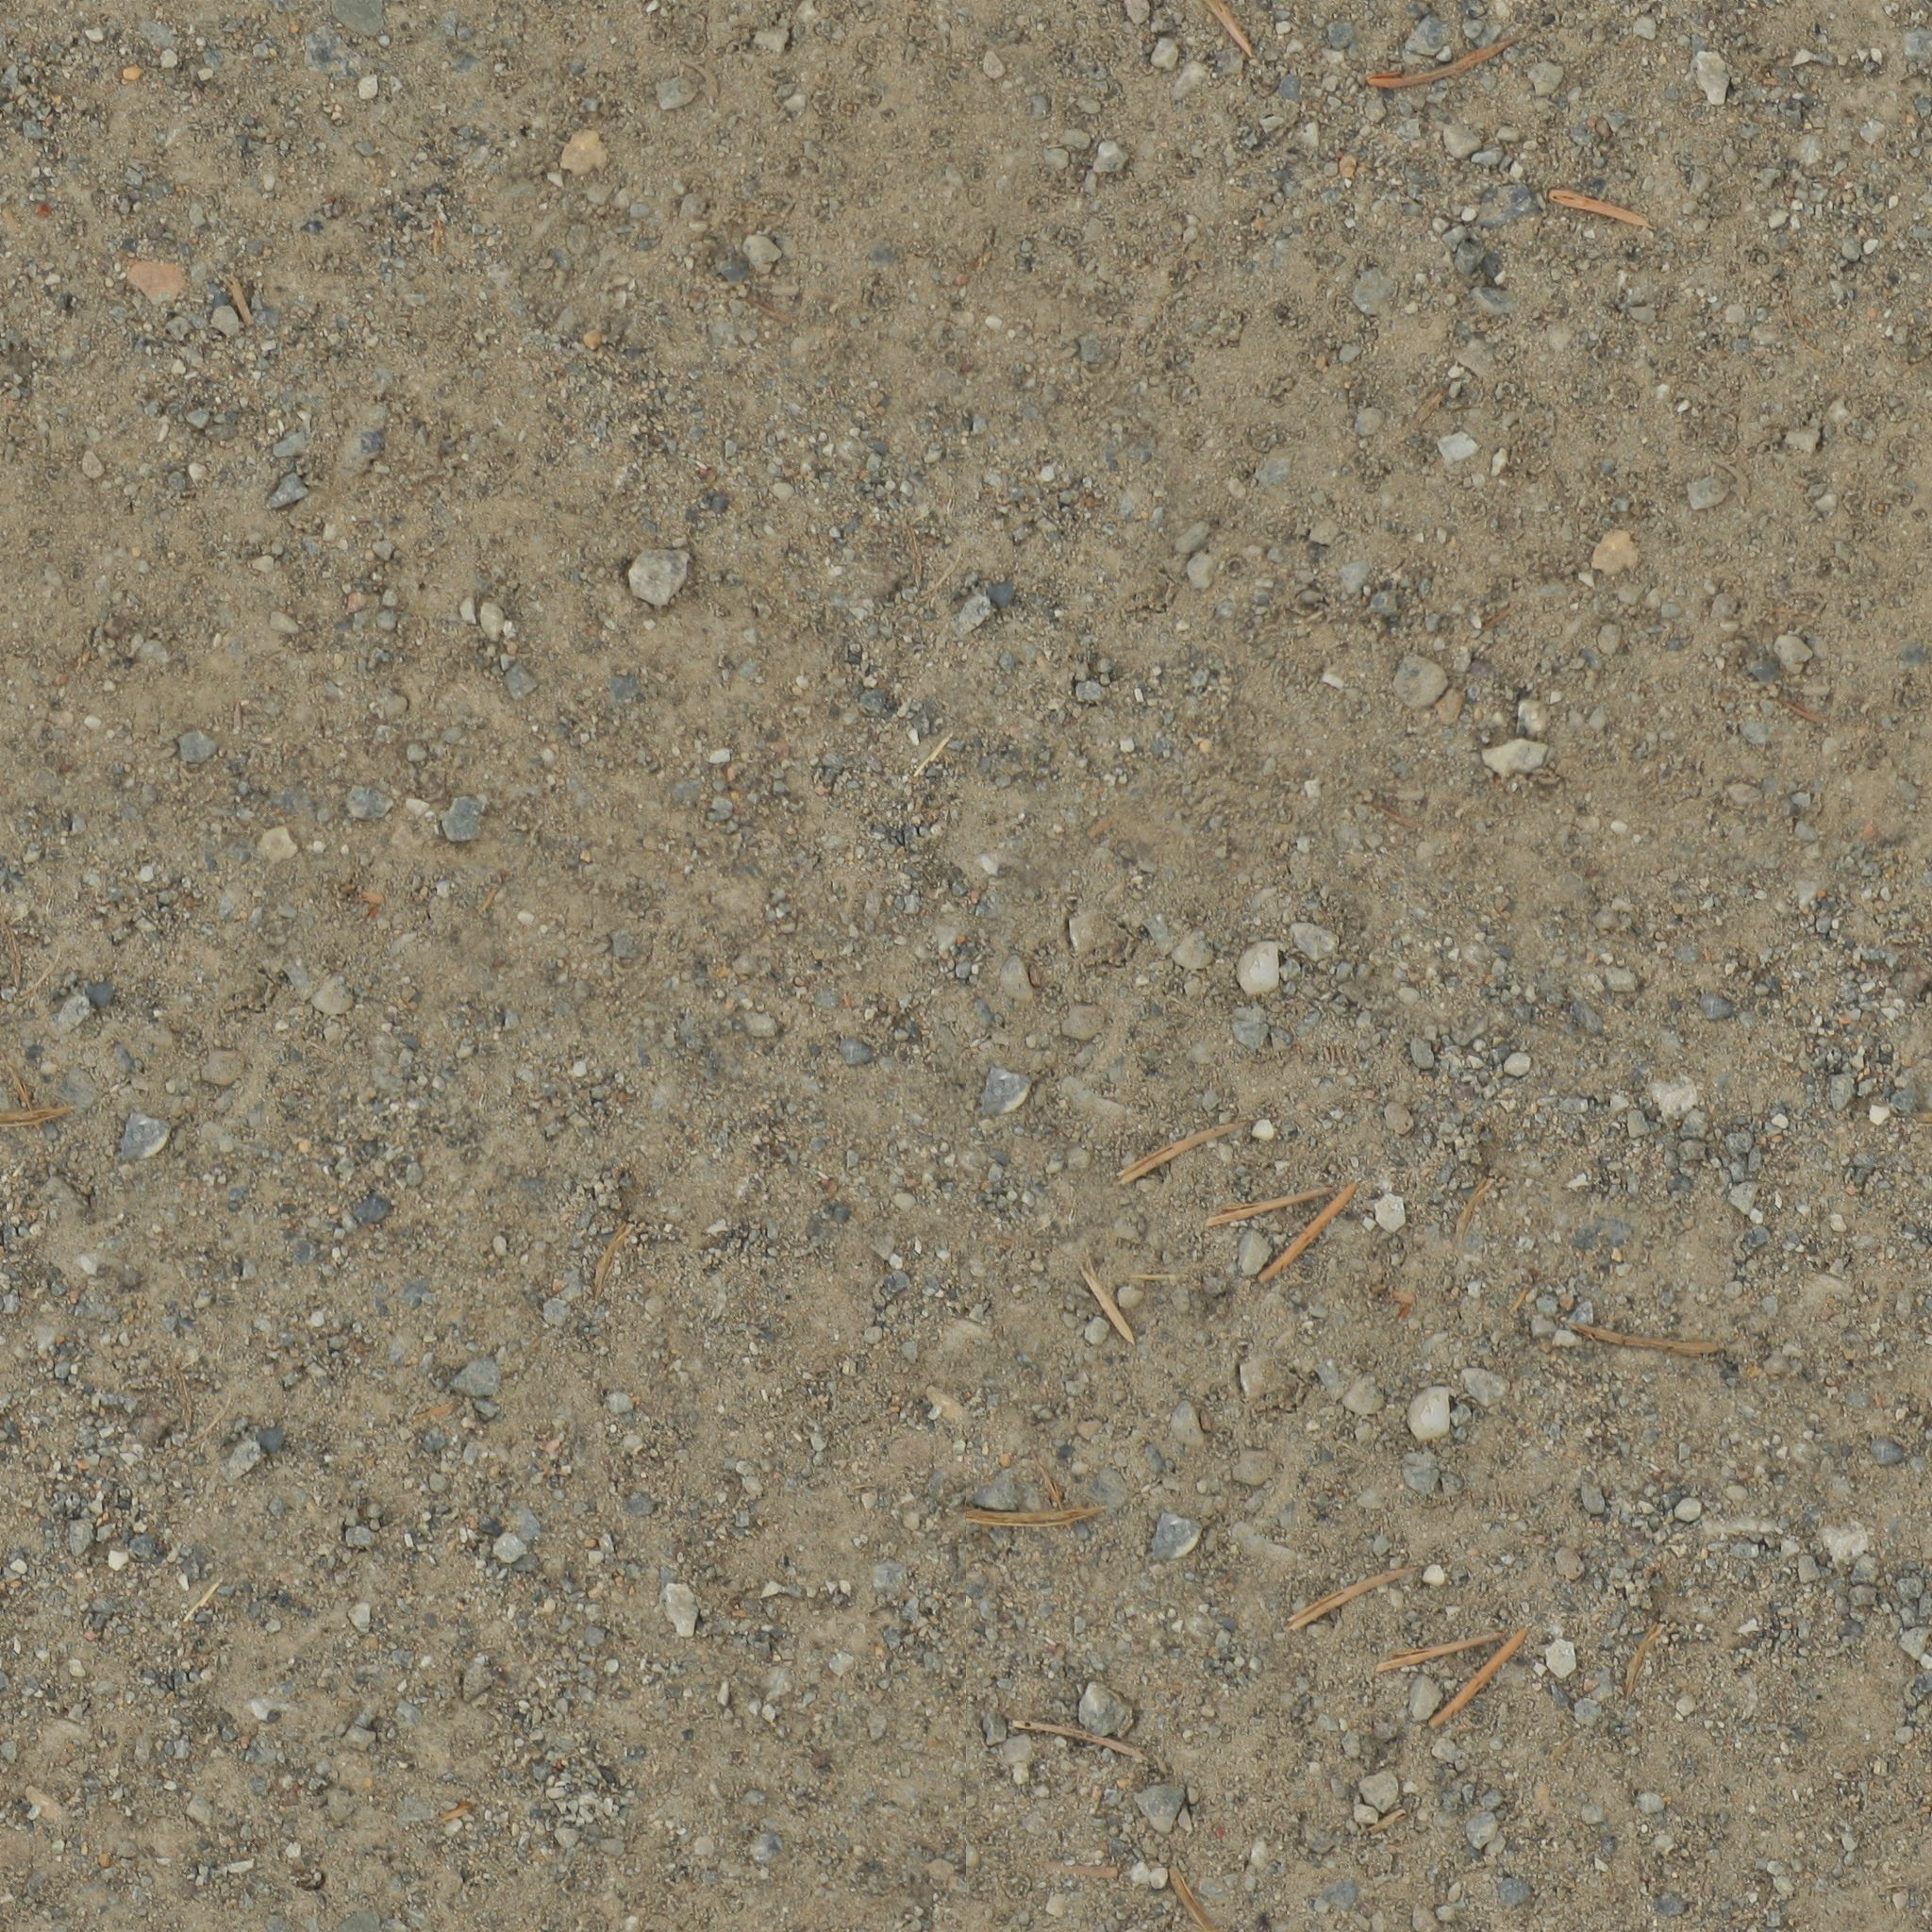 Zero Cc Tileable Dirt Seamless Texture Photographed And Made By Me Cc0